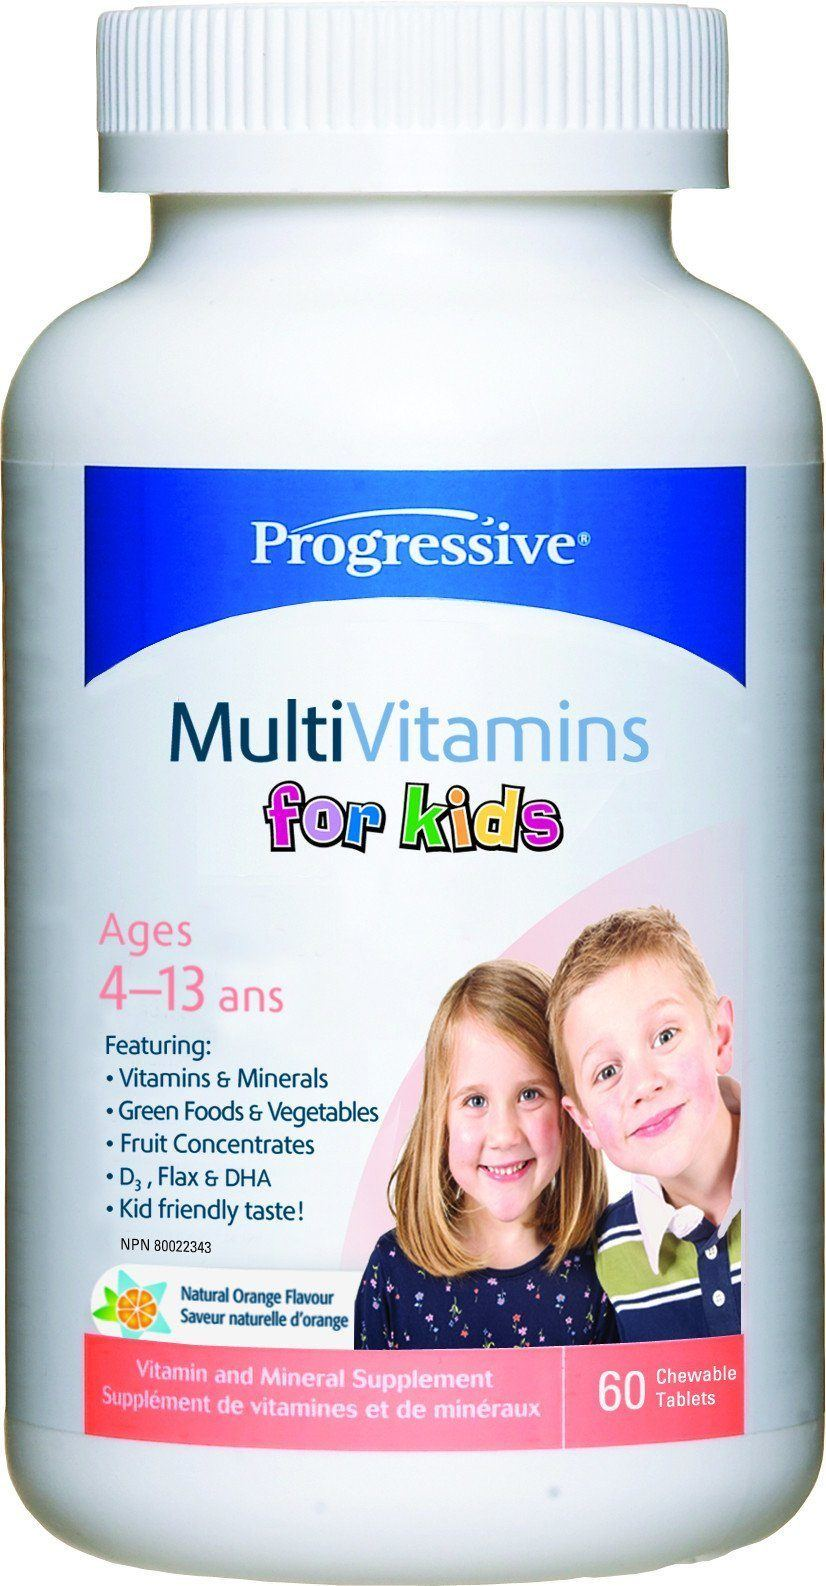 Multivitamins - Goodness Me!